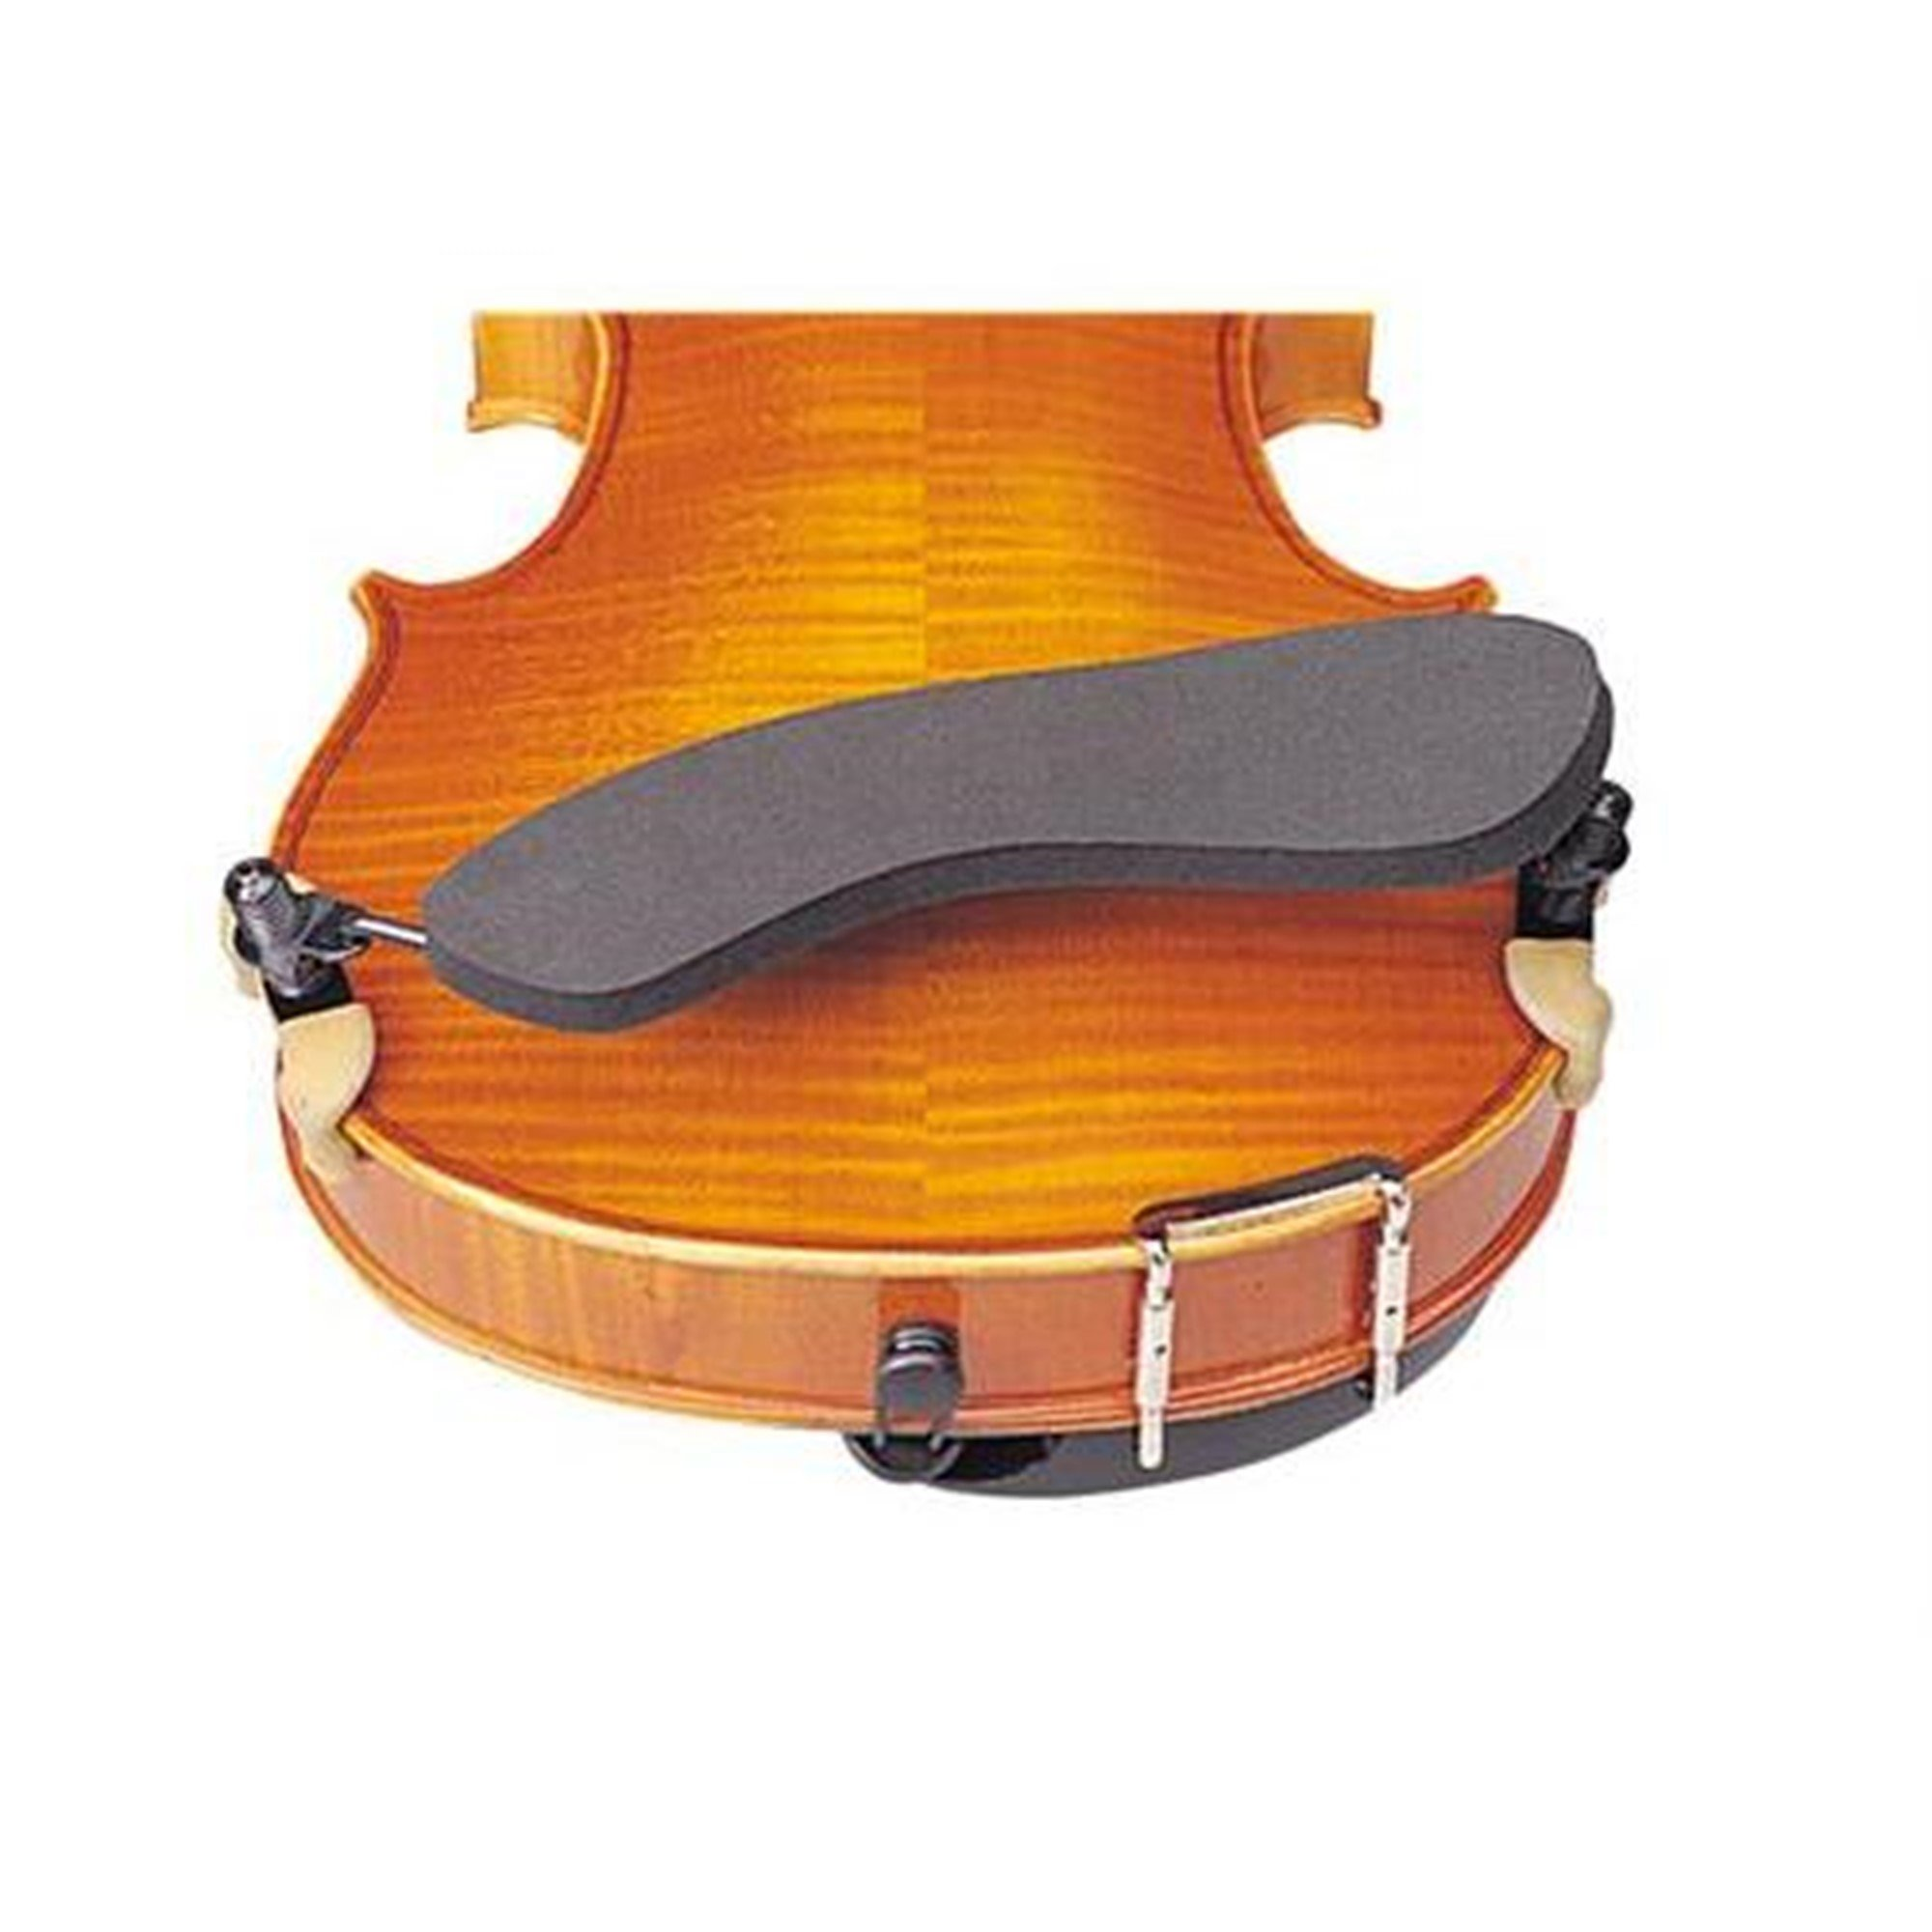 Wolf Forte Secondo Viola Shoulder Rest in action